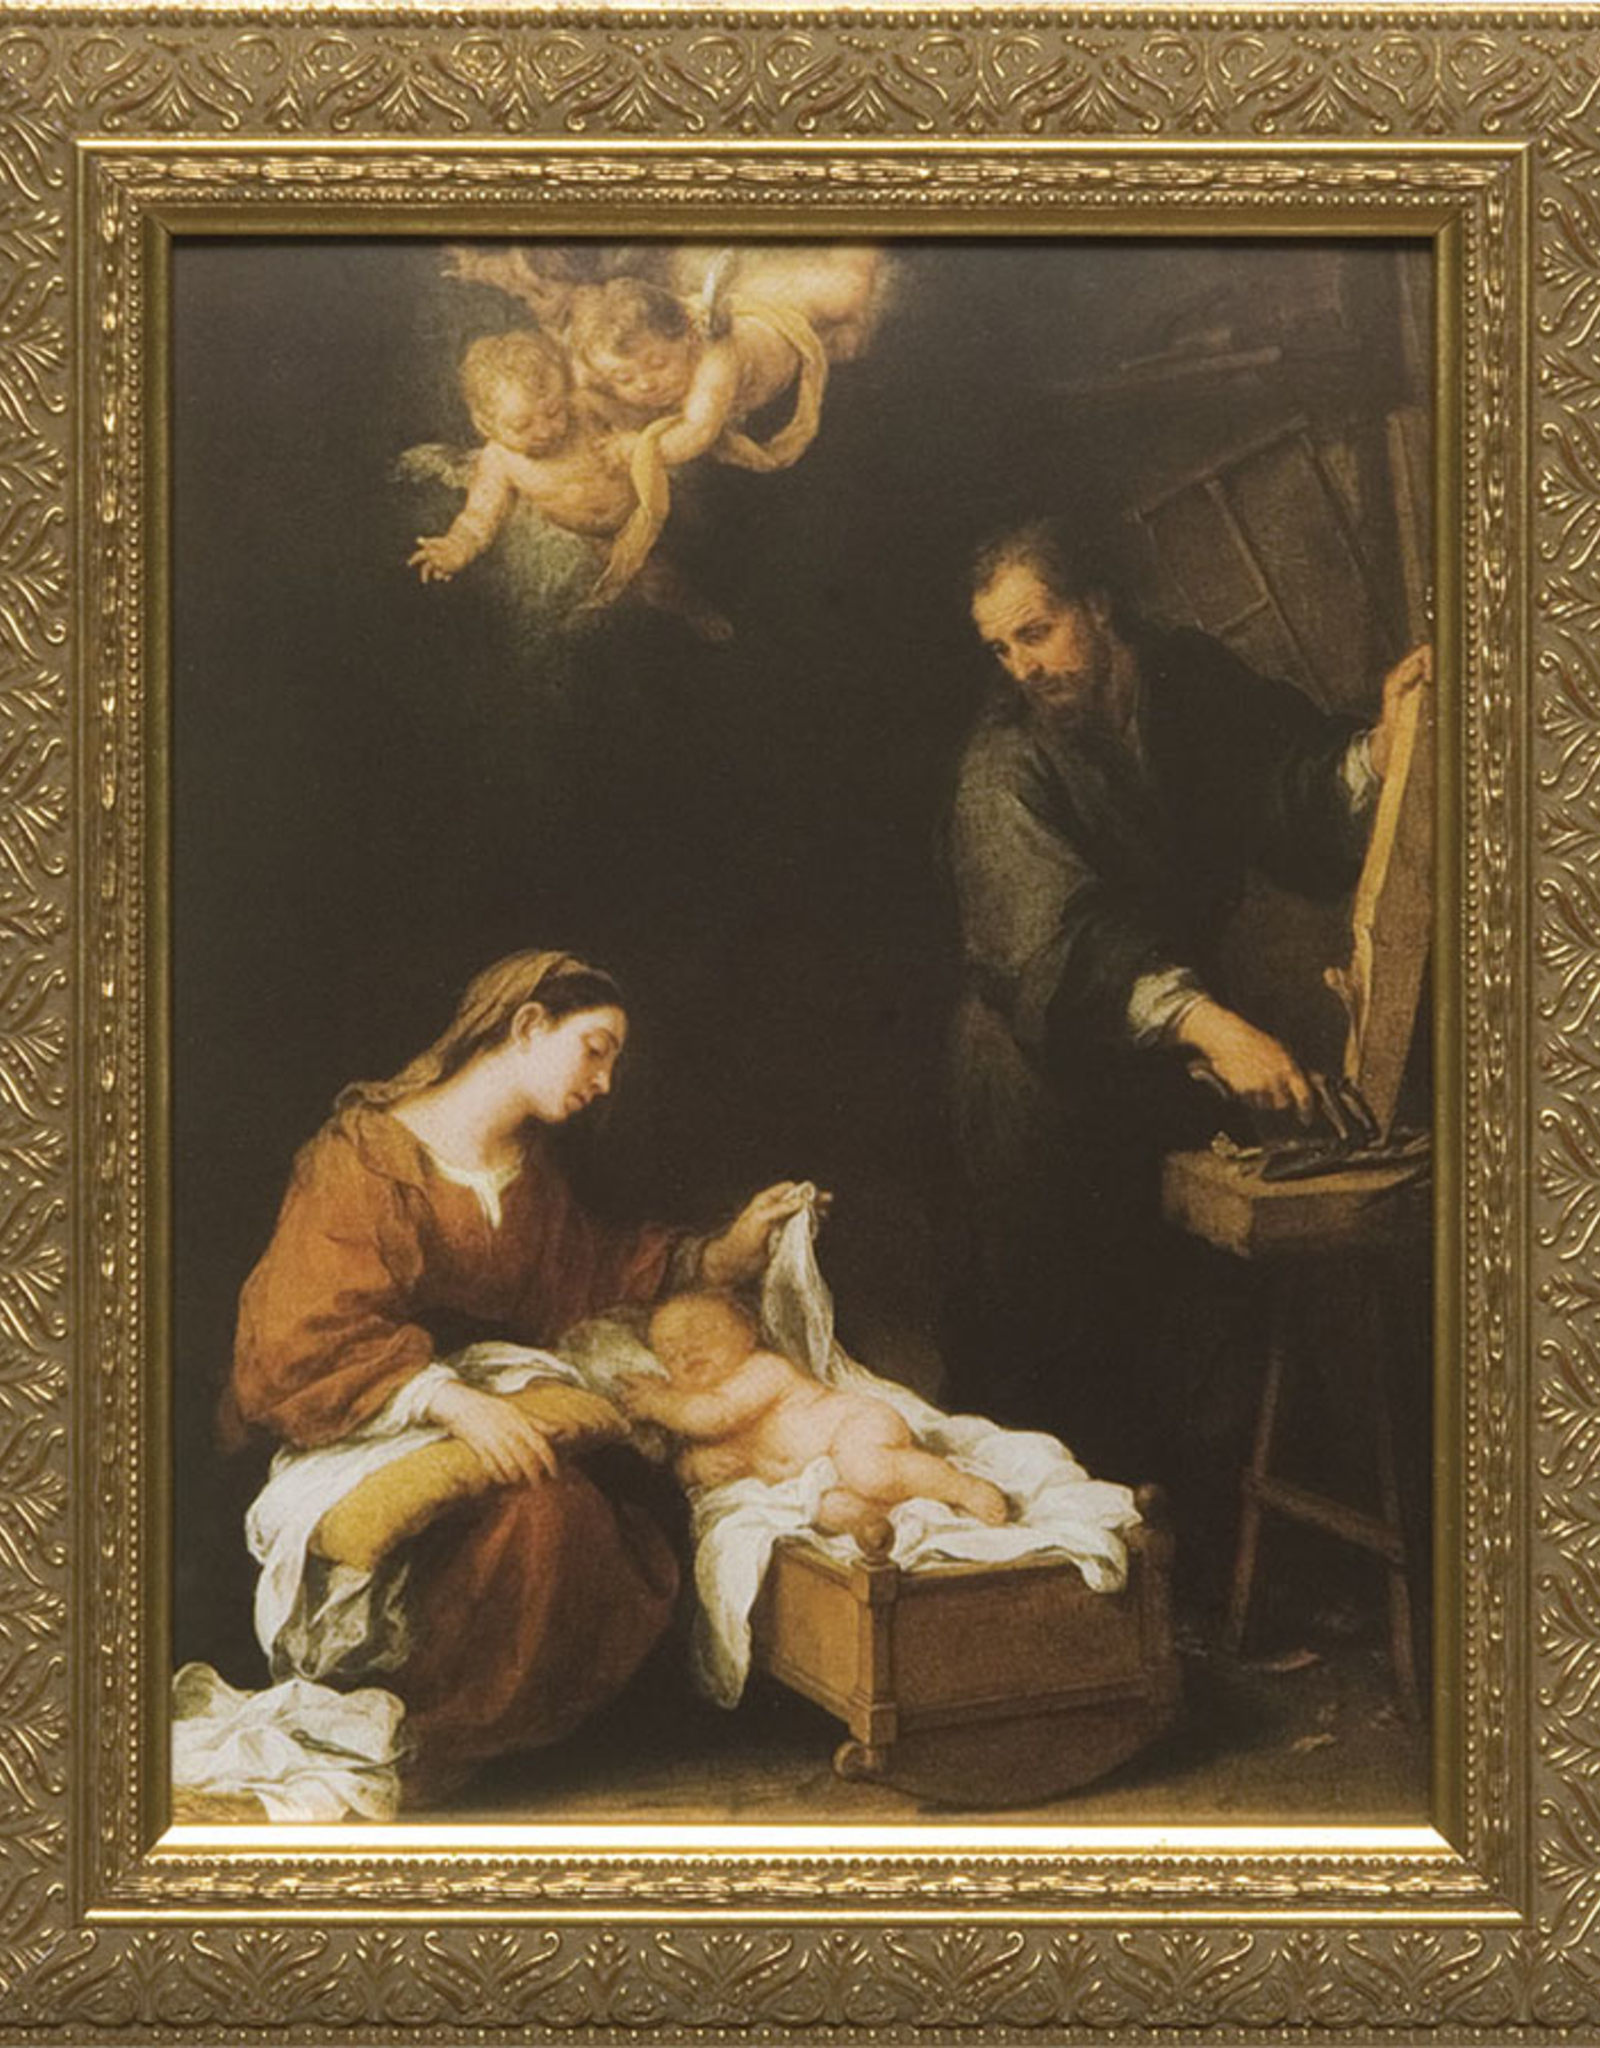 """Nelson/Catholic to the Max Holy Family by Murillo Framed Image in Gold Frame 8 x 10"""""""